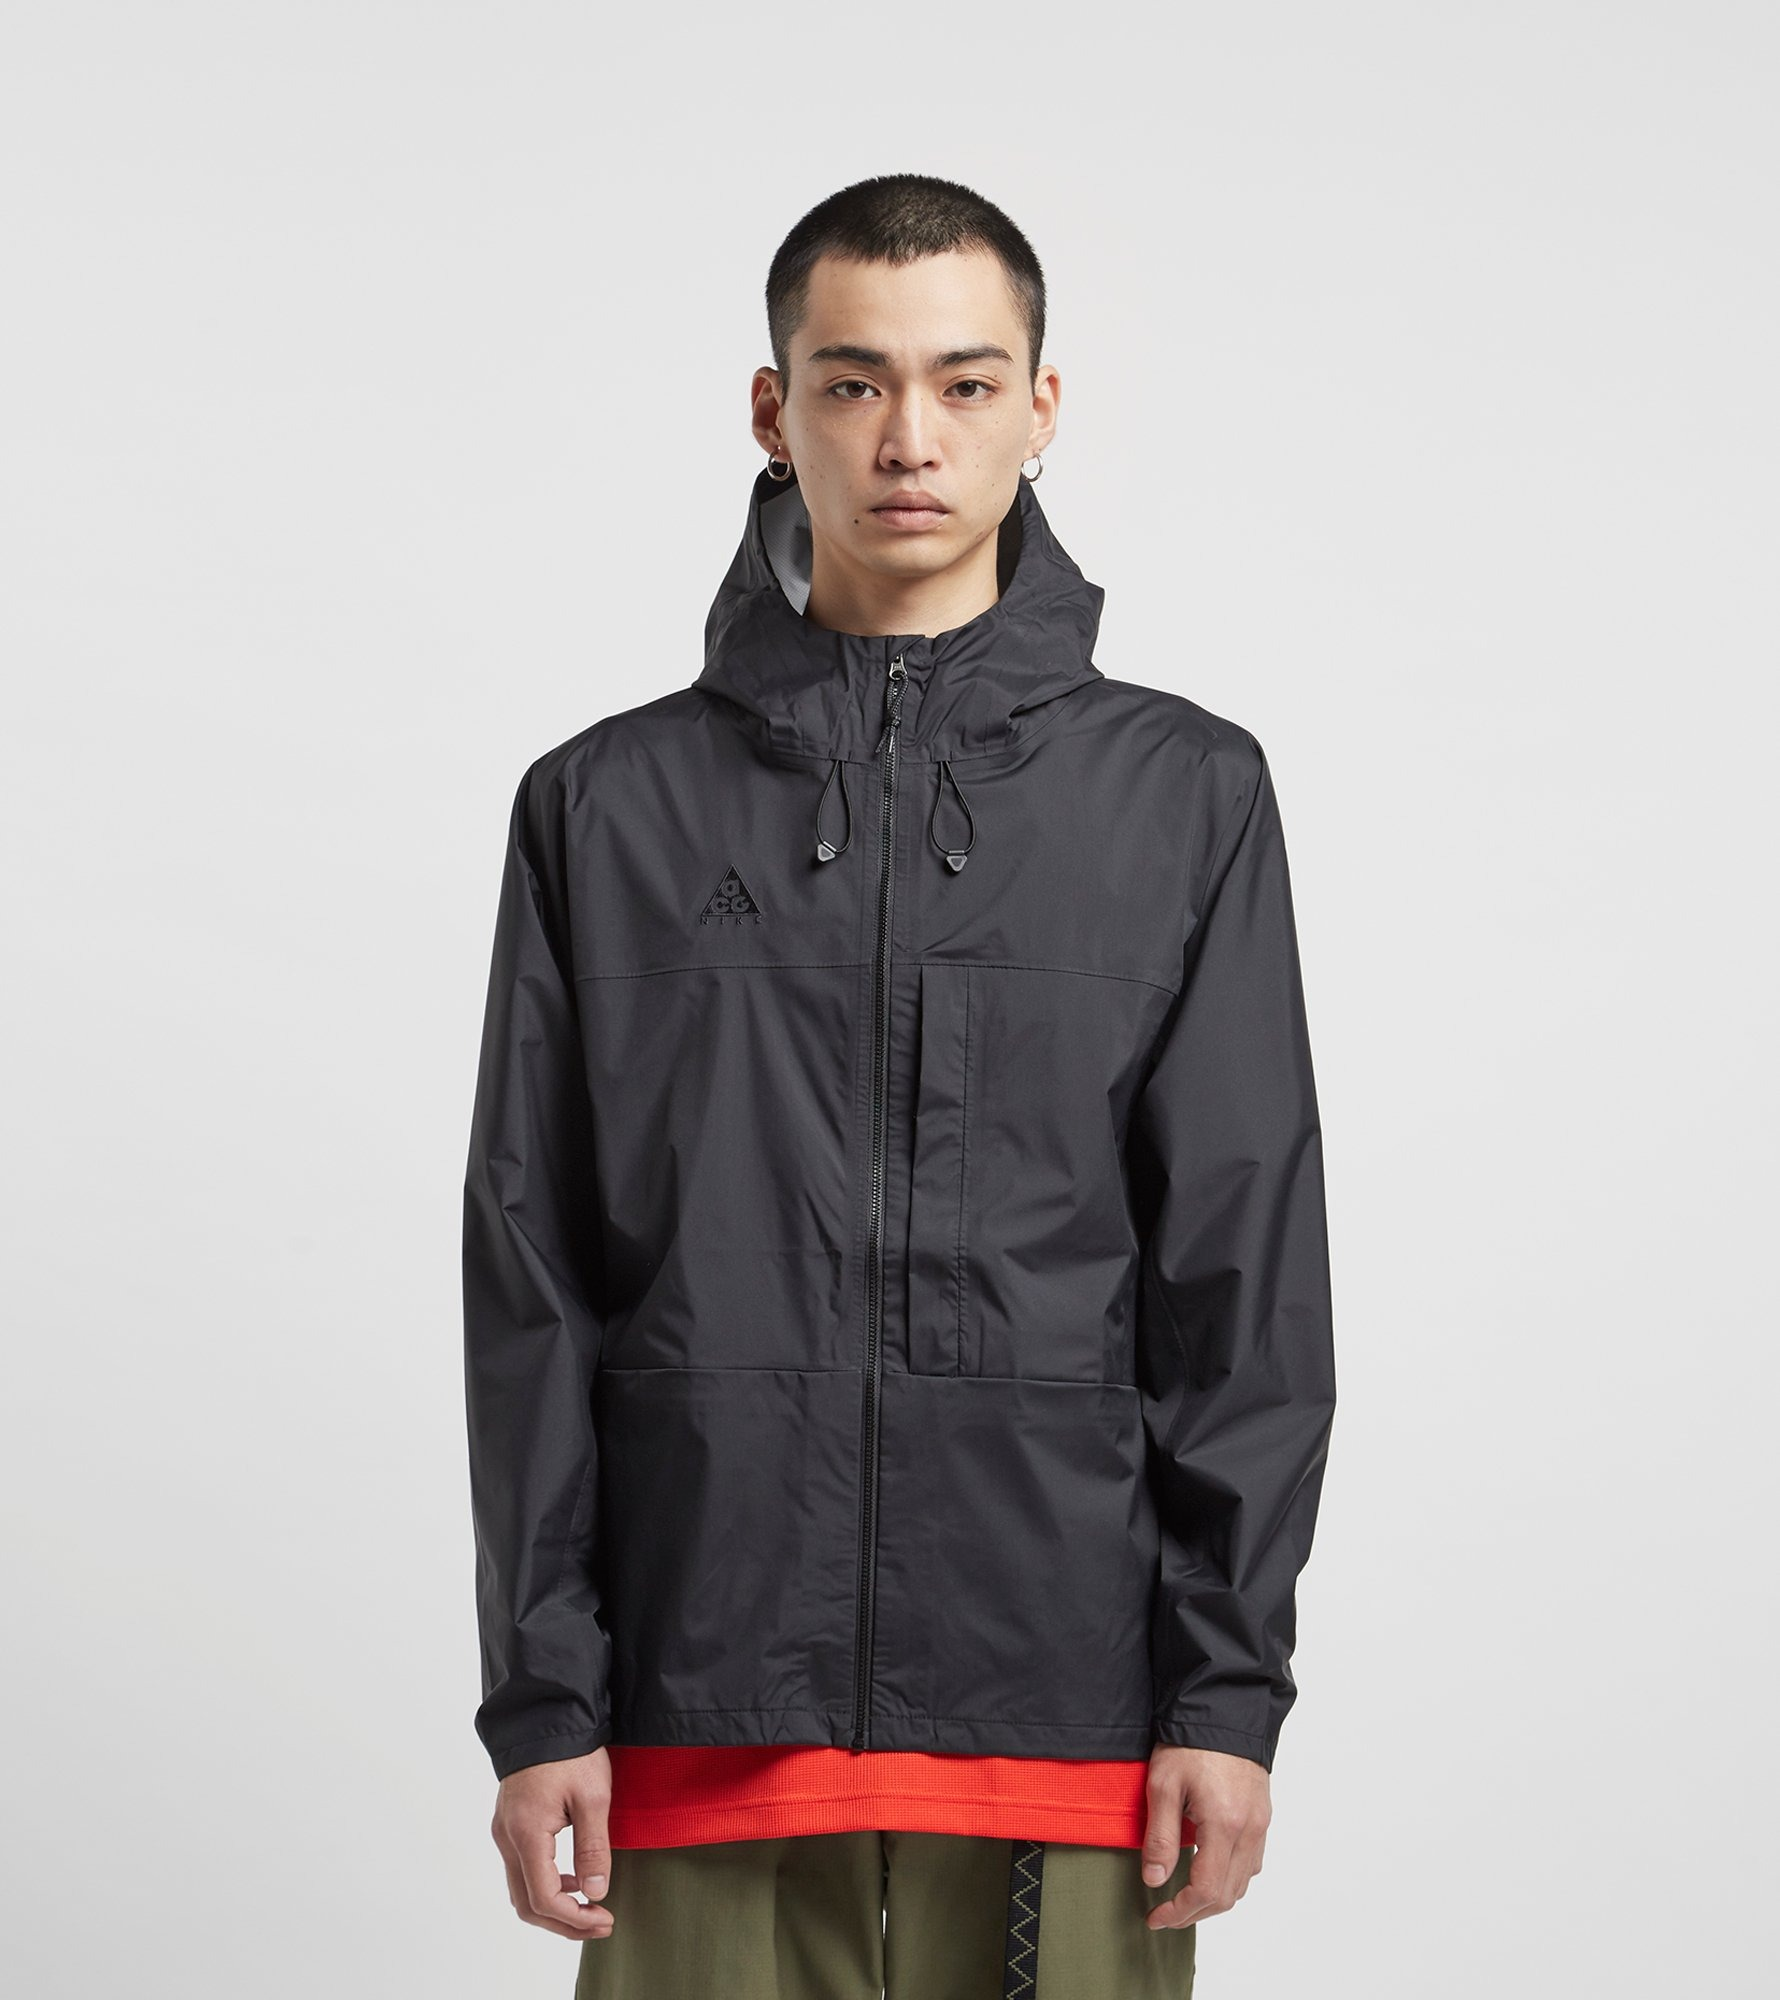 Nike ACG Packable Jacket | Size?